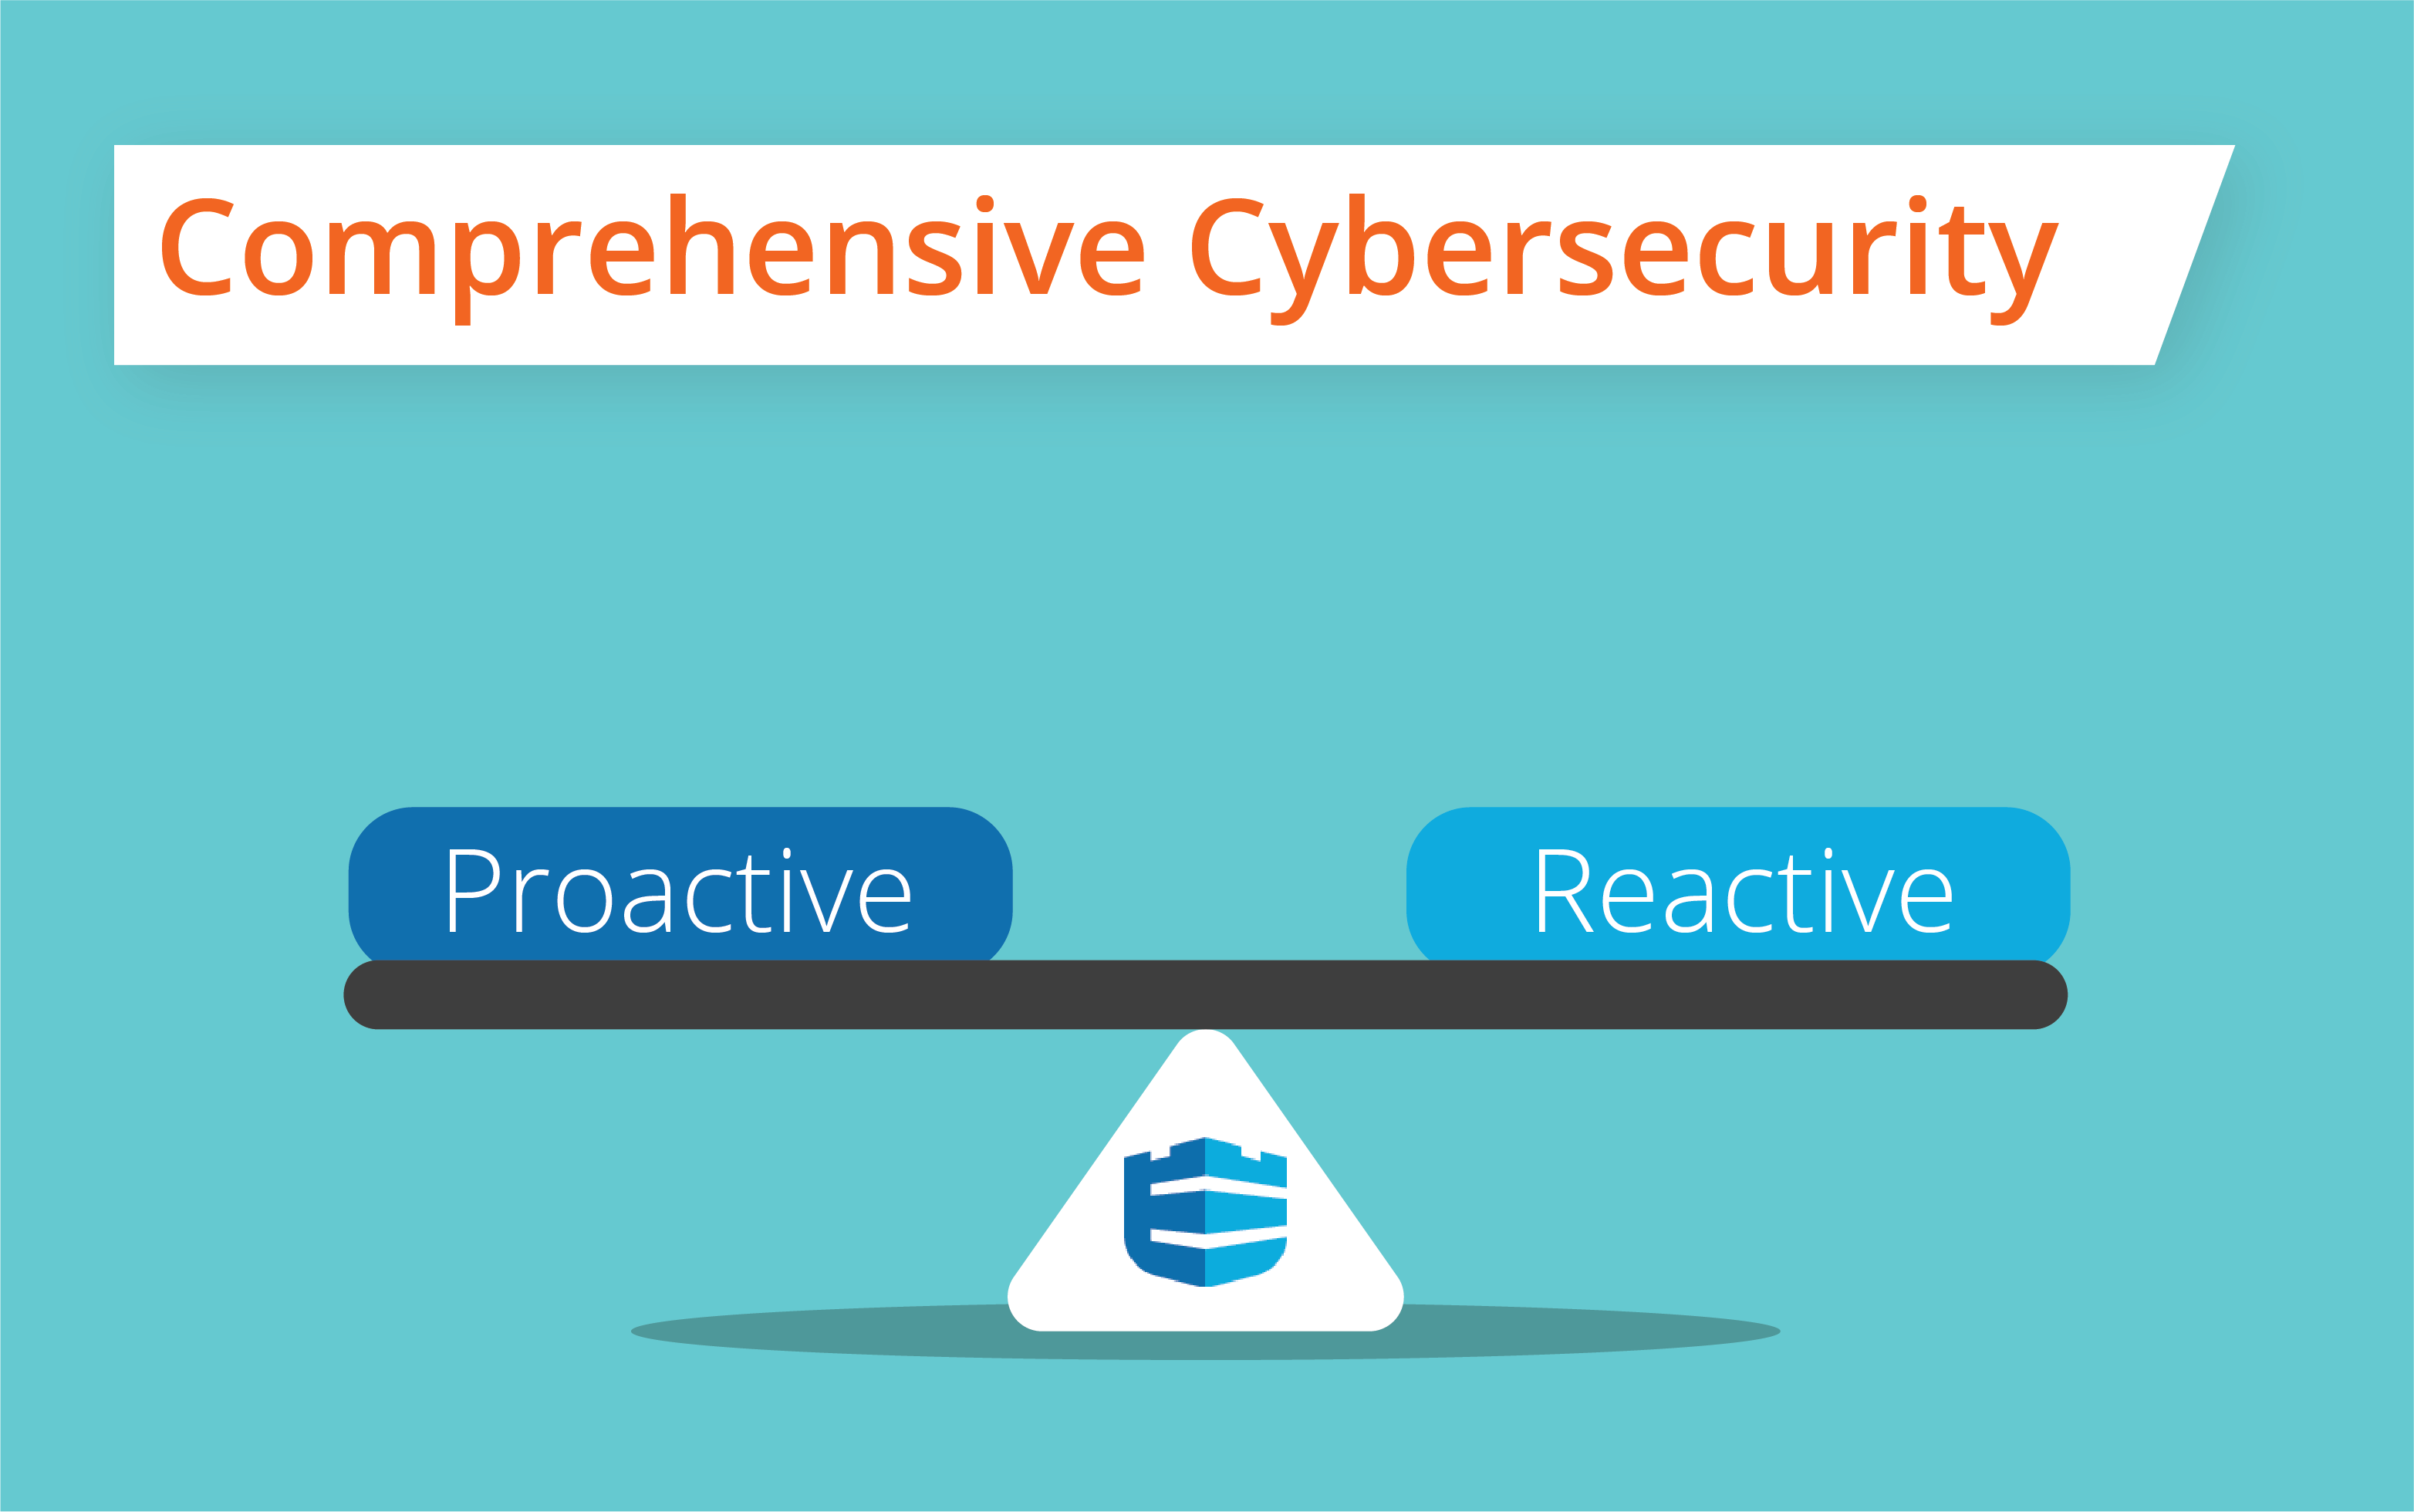 Comprehensive Cybersecurity: Balance of Proactive and Reactive St